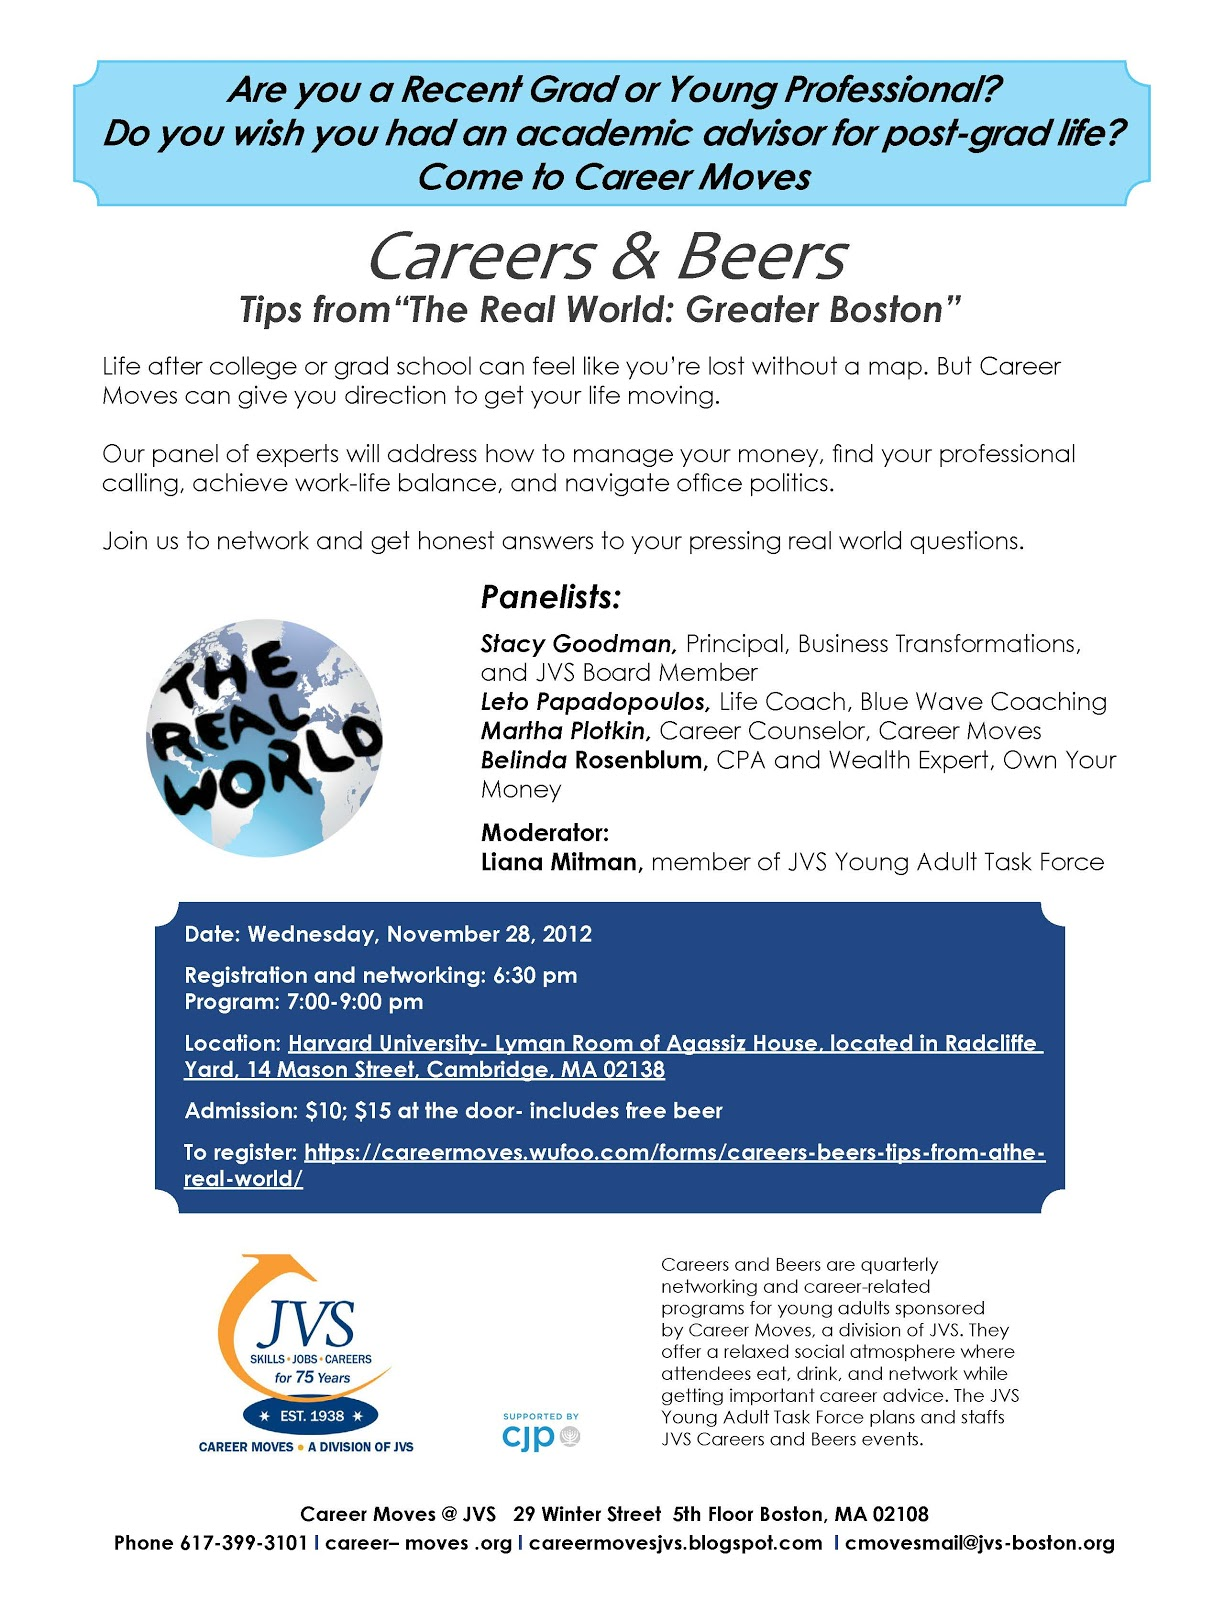 martha plotkin will be discussing this topic further at careers and beers a networking and panel event for young professionals